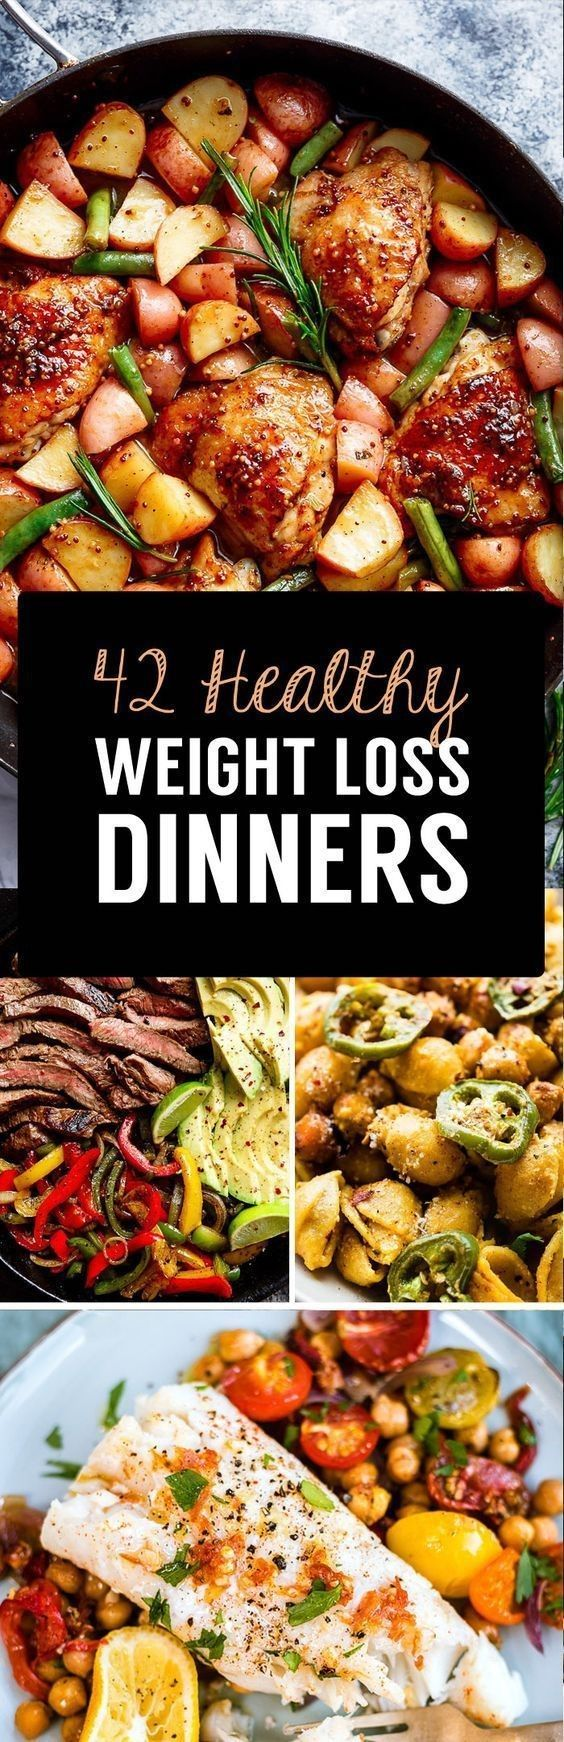 Diet Tips Eat Stop Eat - Eat Stop Eat To Loss Weight Delicious meals make losing weight fast and simple. If you enjoy the food you are sitting down to, it makes sticking to a healthy, calorie controlled lifestyle a lot easier and if you are consistent with your diet, you will be amazed at how fast results can come. The majority of these recipes can be … In Just One Day This Simple Strategy Frees You From Complicated Diet Rules - And Eliminates Rebound Weight Gain In Just One Day This S...